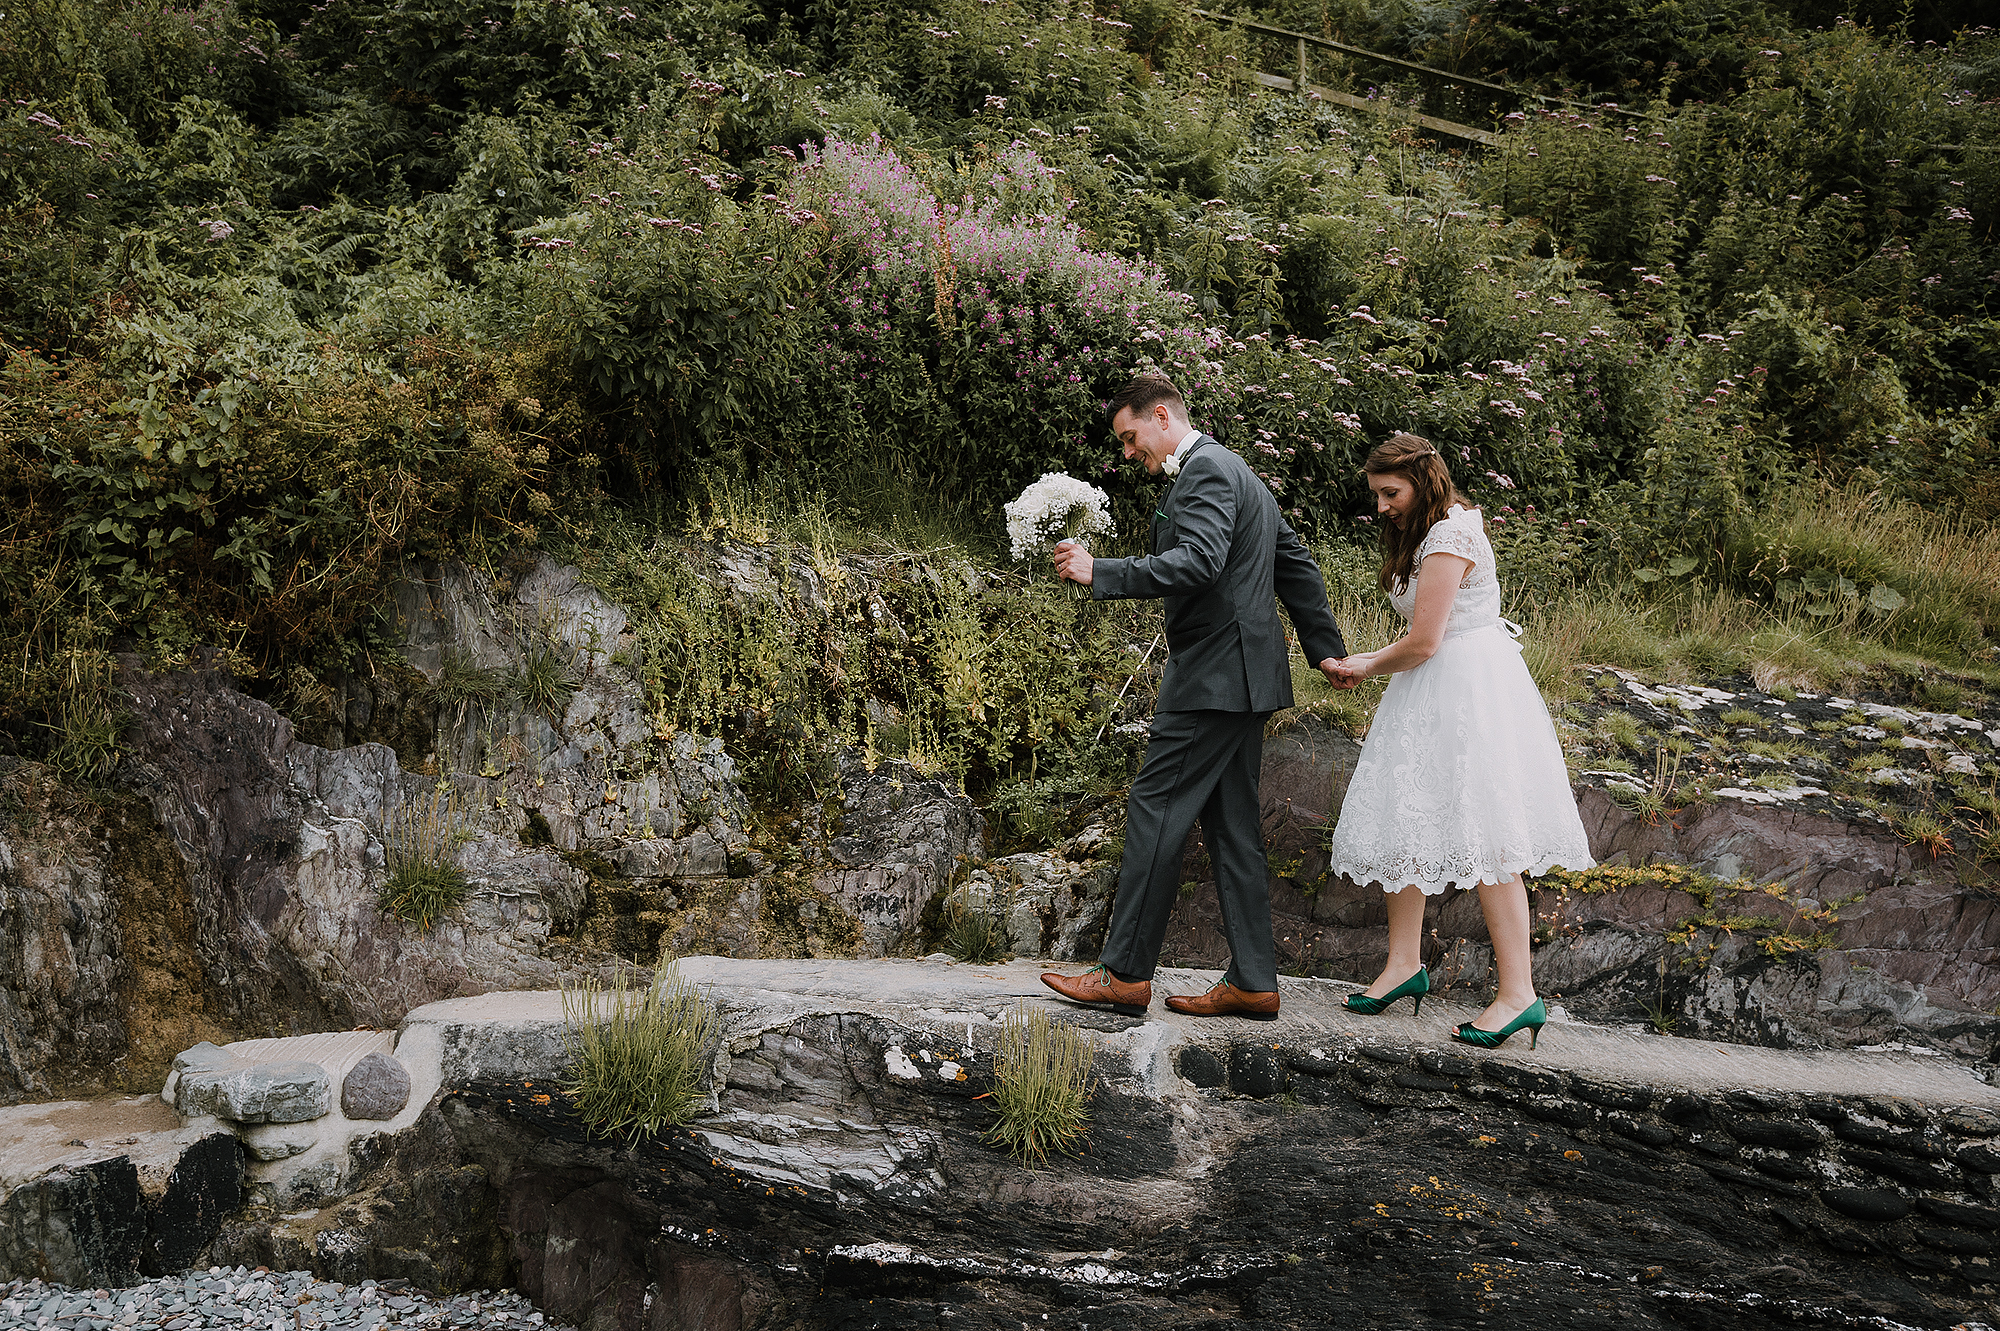 Bride and groom walking across rocks in Cornwall wedding